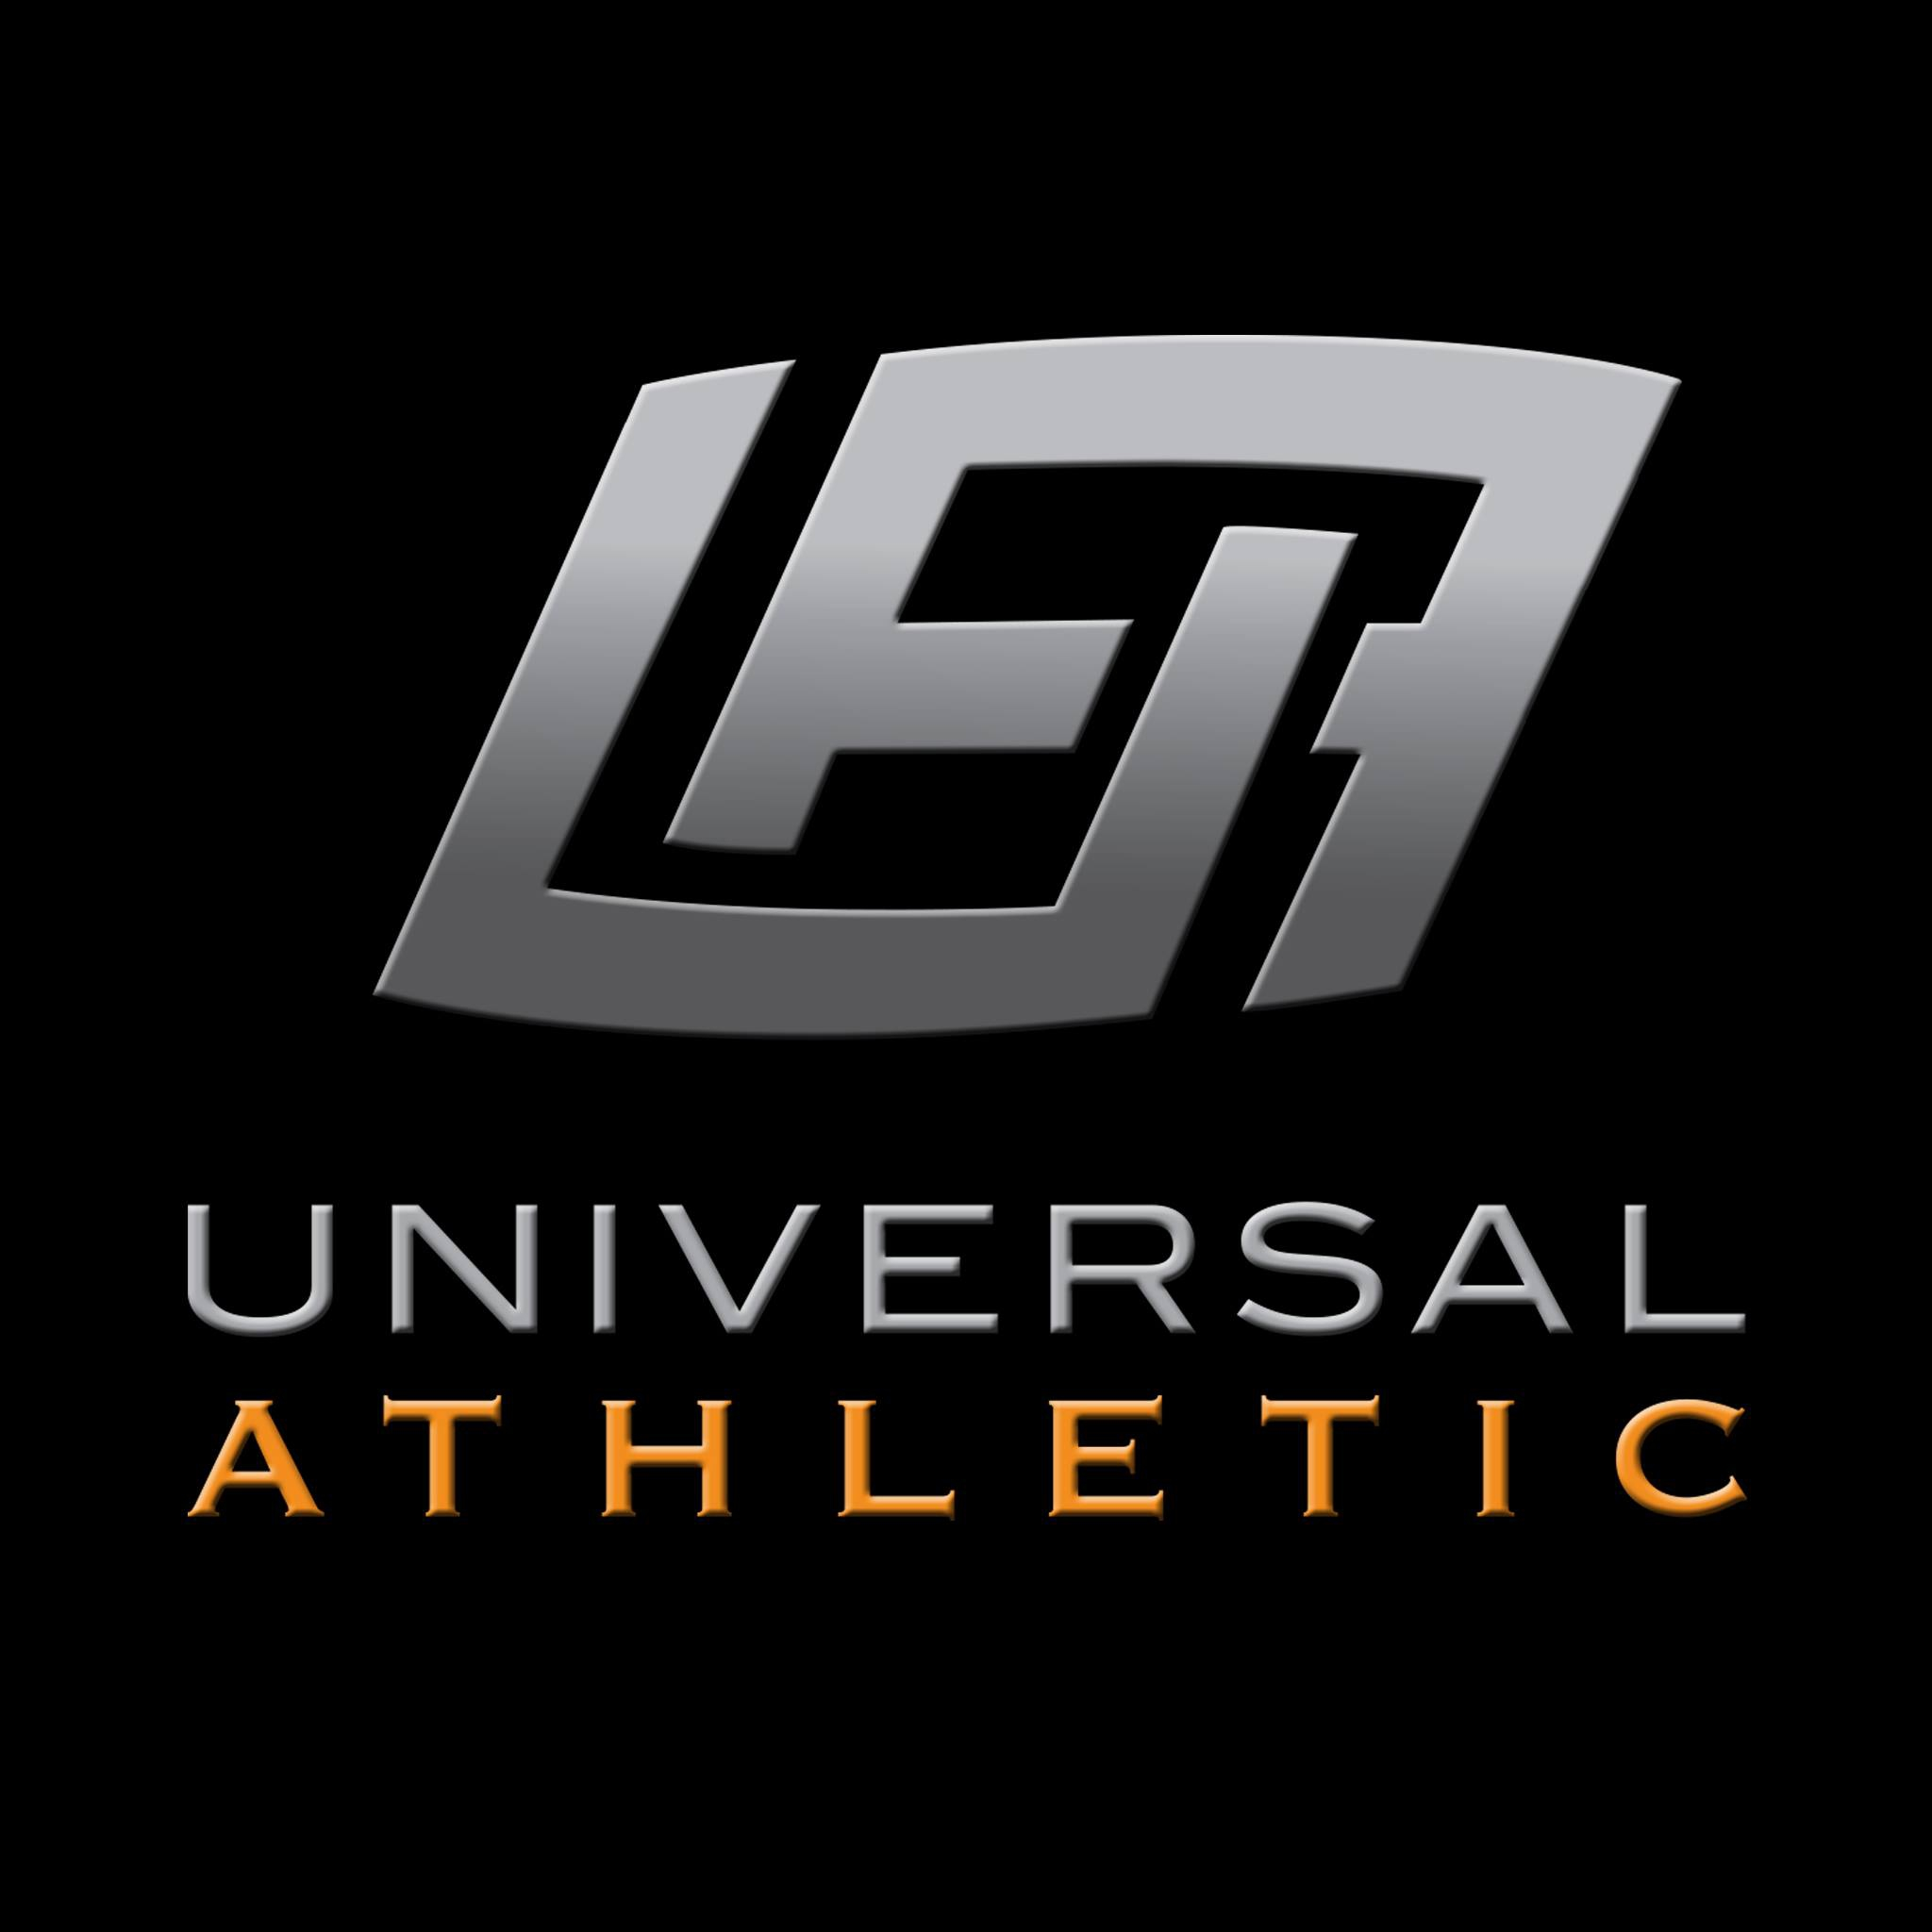 Universal Athletic - Universal Athletic has been in the sporting goods industry since 1971 and is the #1 independent team dealer in the country. We operate 10 retail locations and have over 50 wholesale salespeople. Our mission is to equip every athlete to achieve peak performance.